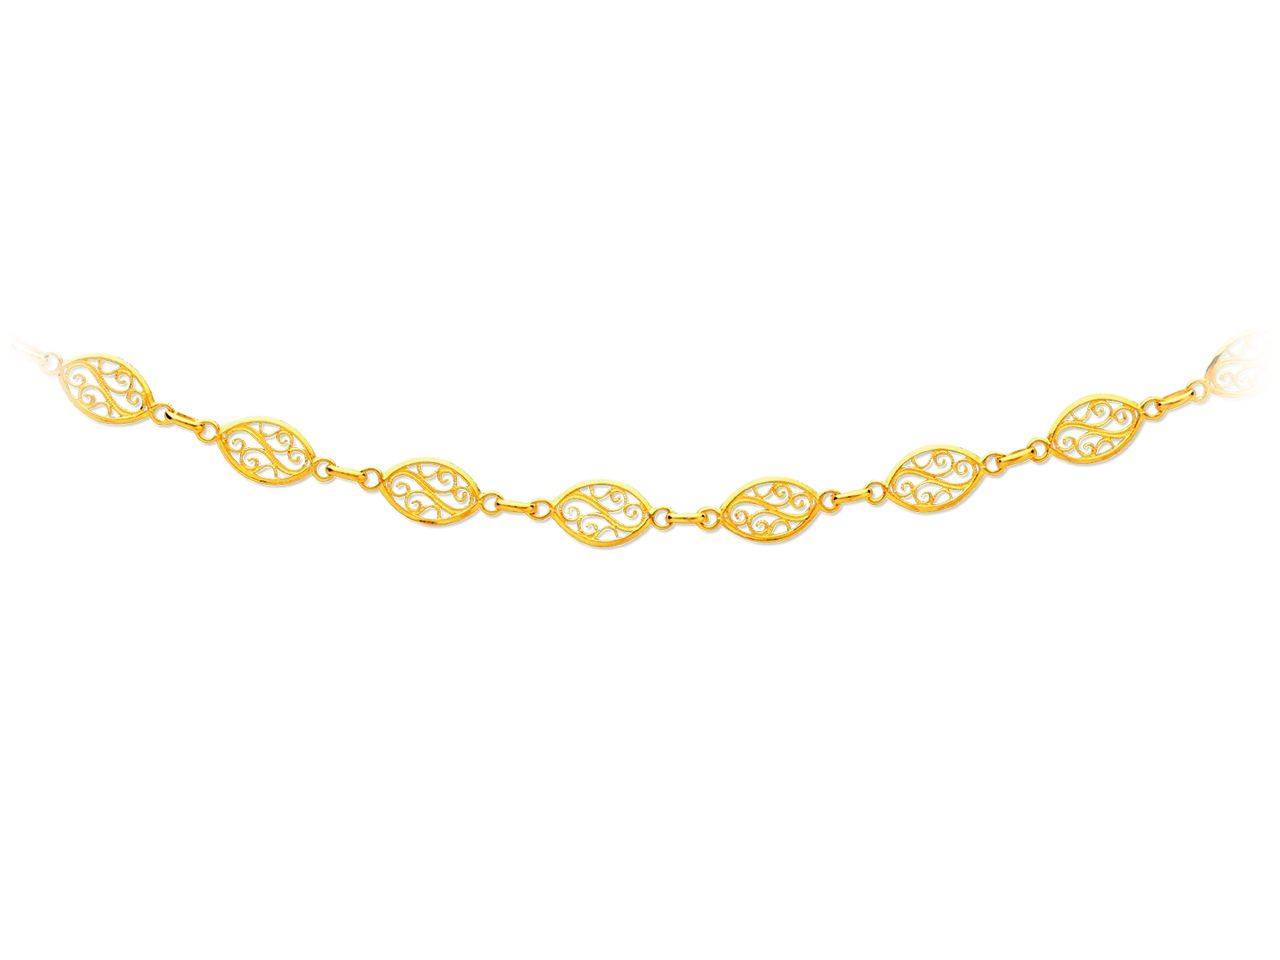 Collier maille filigrane, Or jaune 18k, 8 mm, 65 cm